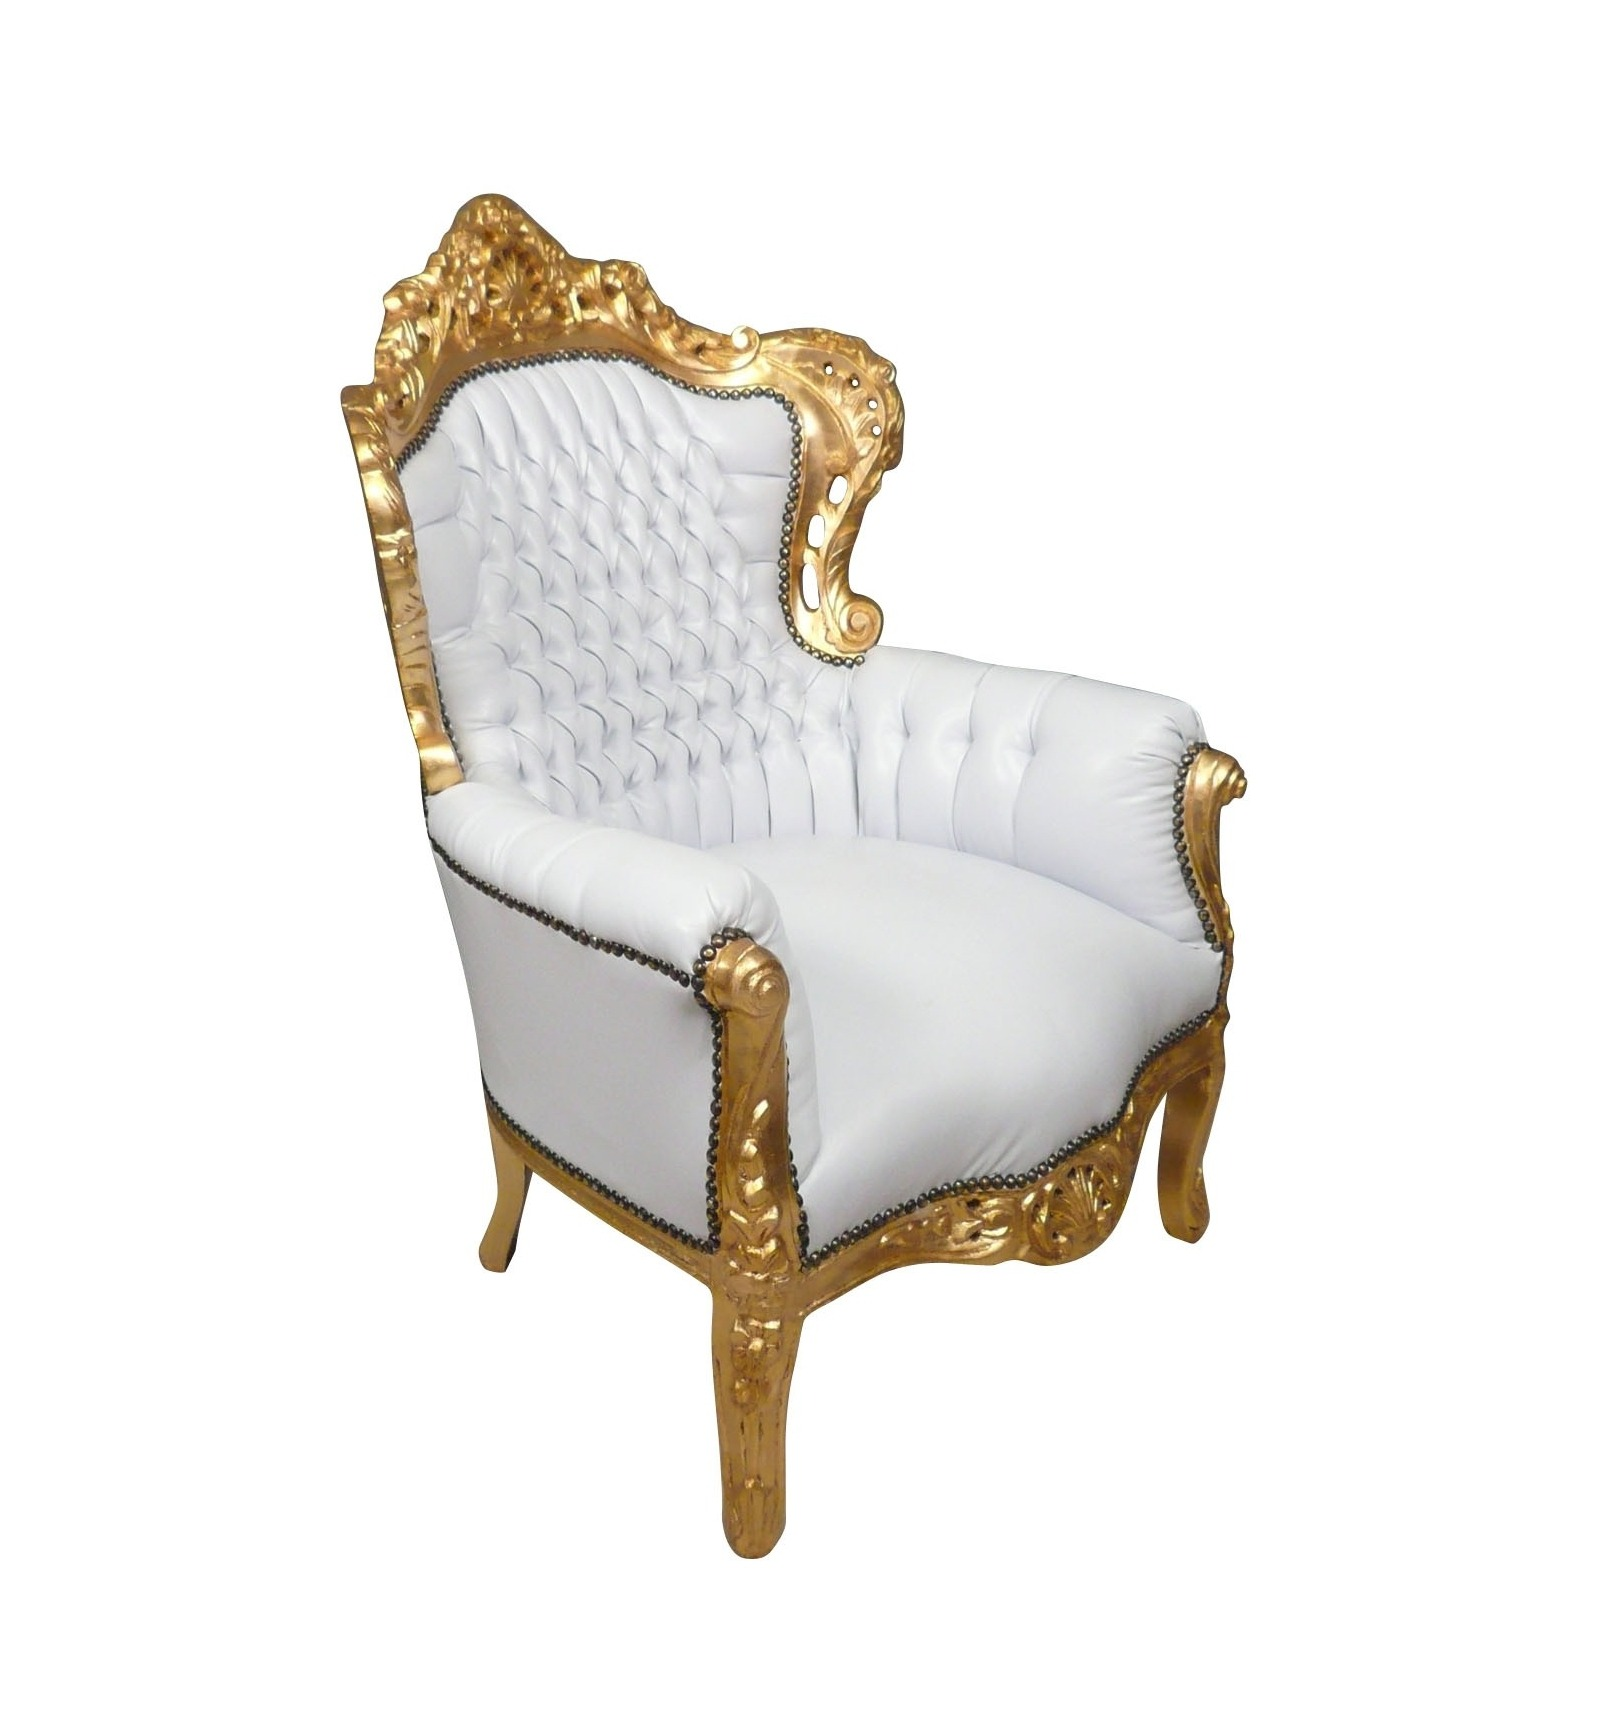 fauteuil baroque blanc et or mobilier style baroque. Black Bedroom Furniture Sets. Home Design Ideas